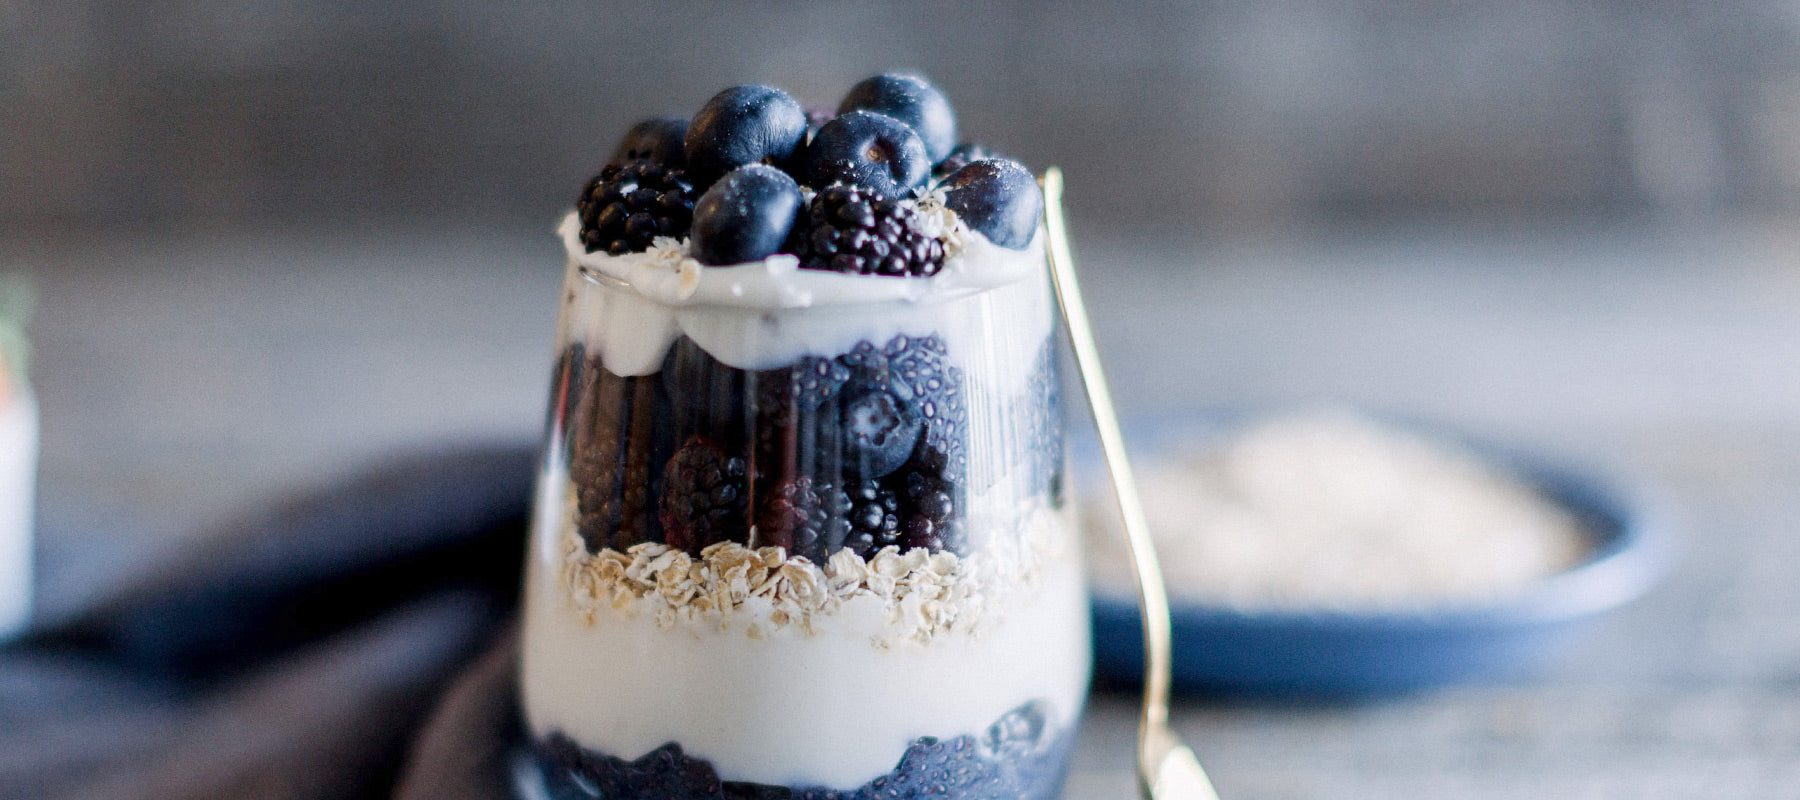 Blackberry Blueberry Parfait by Amber Approved